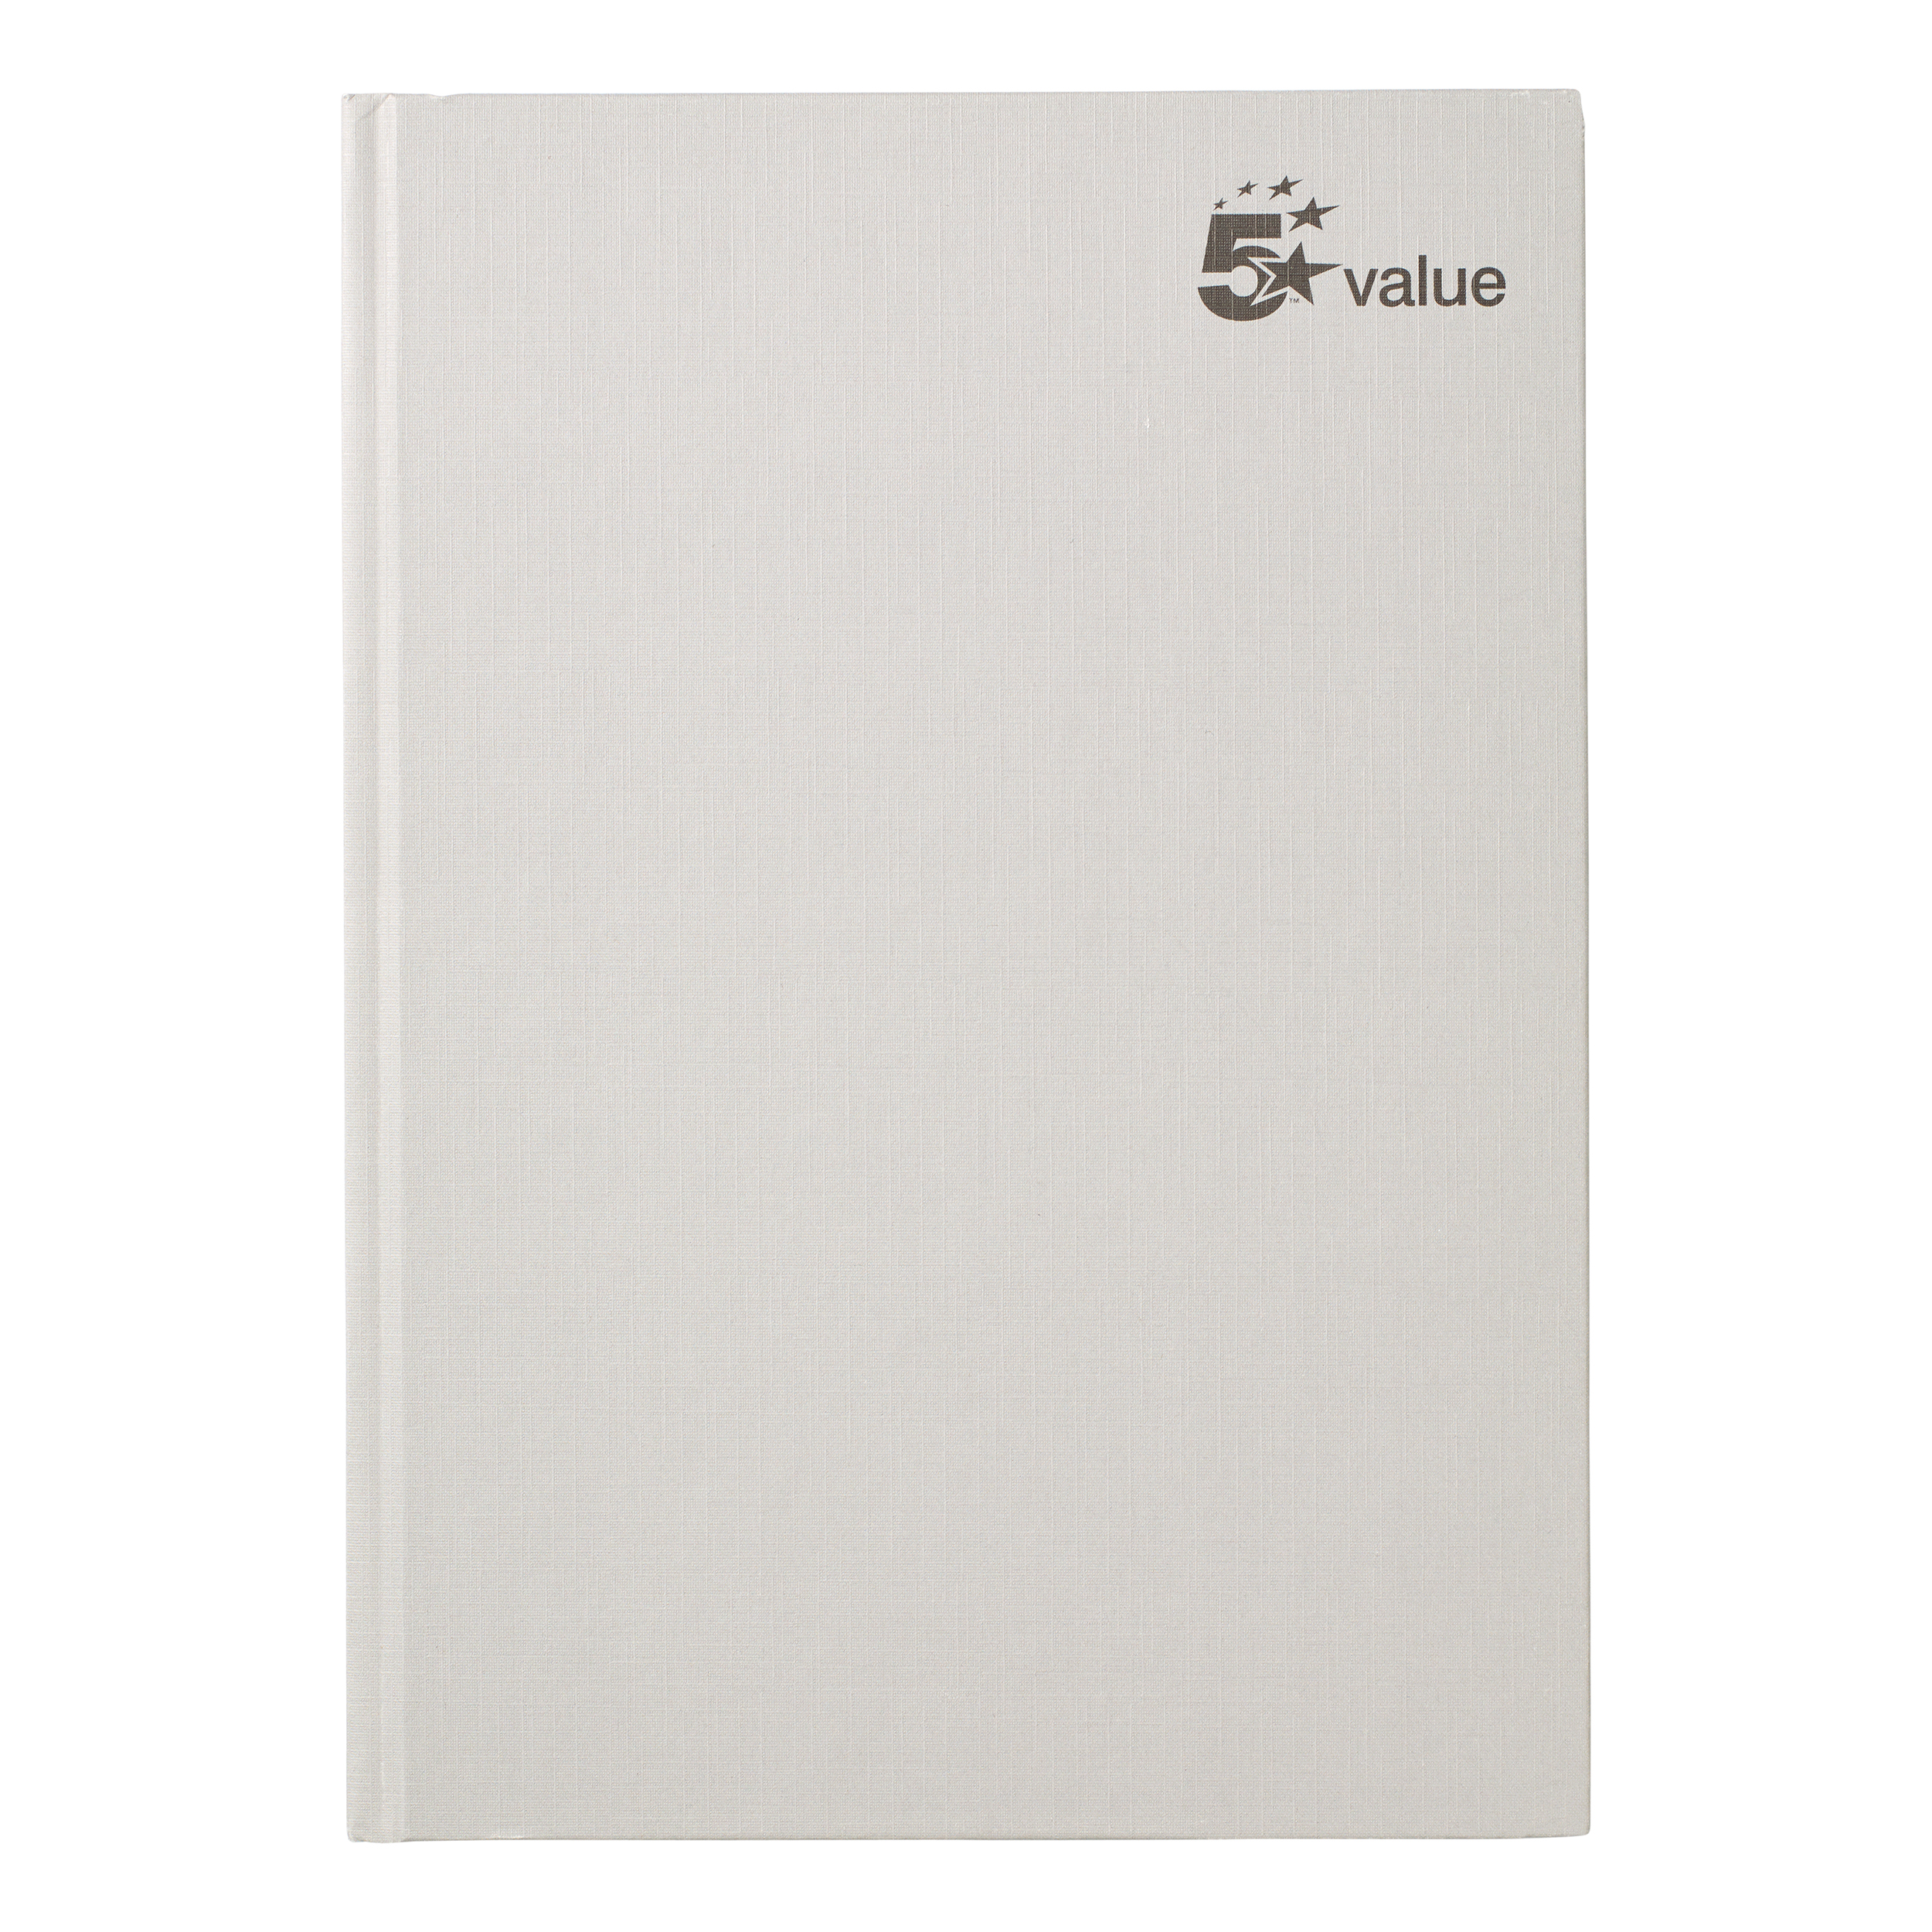 Notebooks 5 Star Value Casebound Notebook 70gsm Ruled 192pp A4 Pack 5